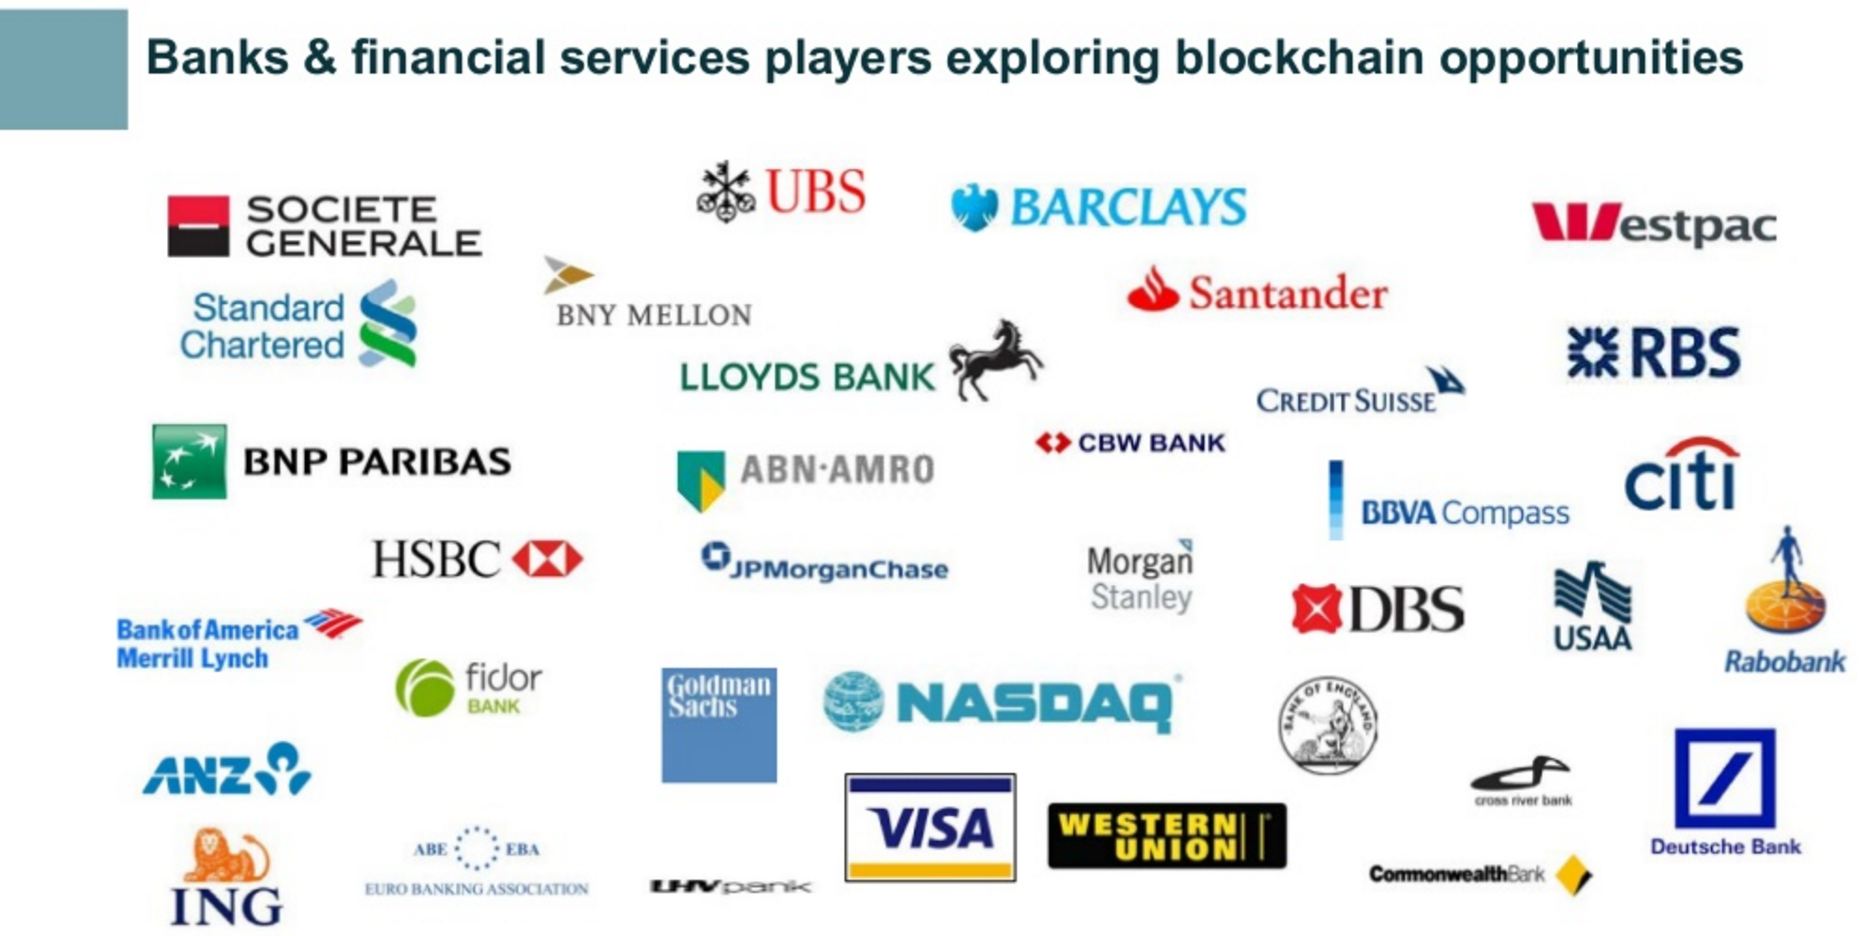 banks financial institutions exploring blockchain tech